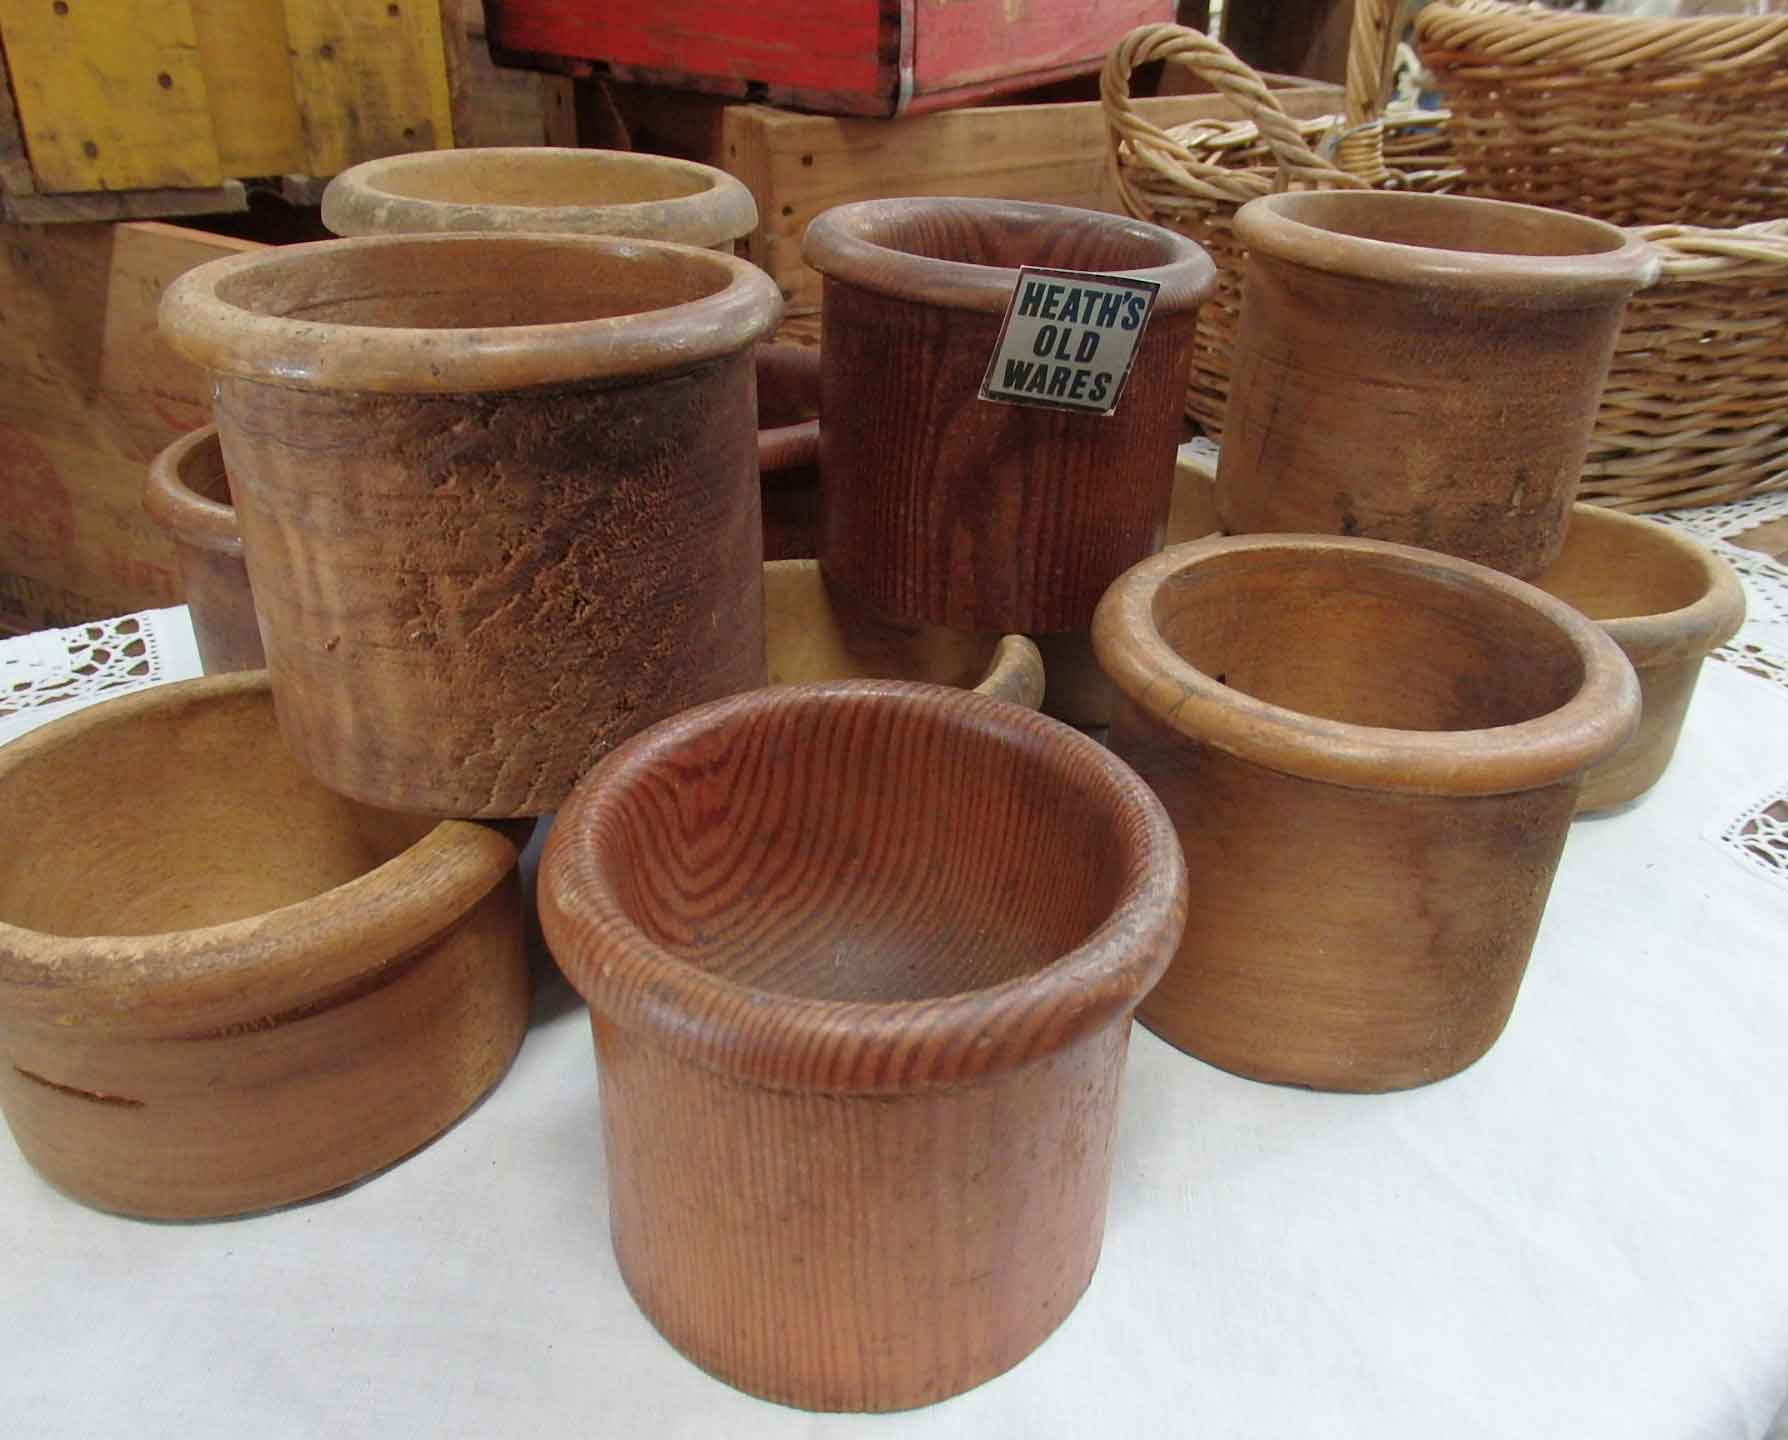 Timber coin pots from banks and post office type establishents $30 - $40  for sale at Heaths Old Wares, Collectables, Antiques & Industrial Antiques, 19-21 Broadway, Burringbar NSW 2483 Ph 0266771181 open 7 days